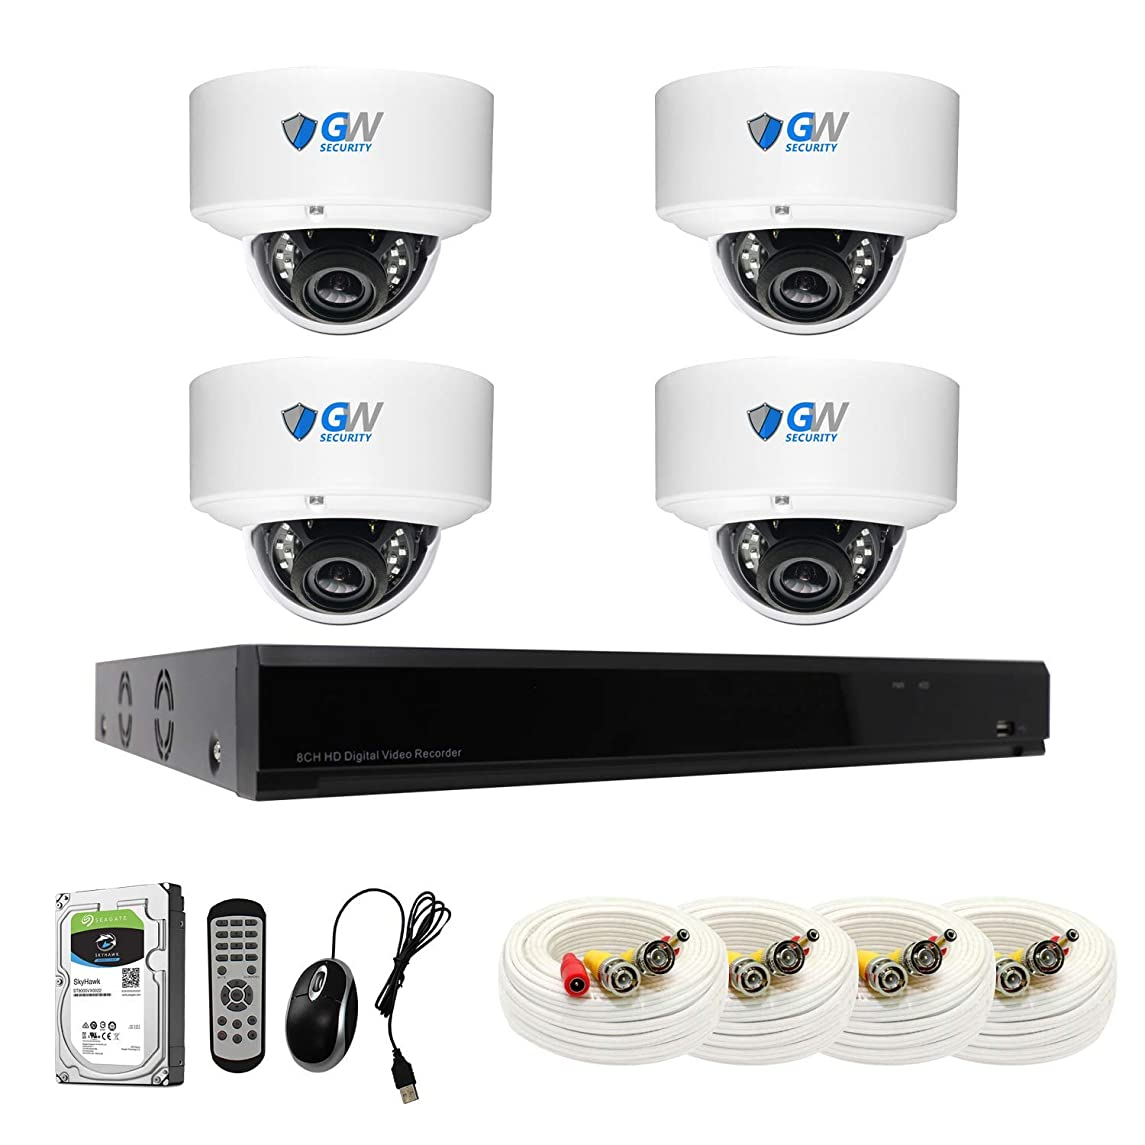 【2019 New】 GW 8CH 4K DVR H.265 8MP Complete Security System with (4) x 4K 2160P Waterproof 2.8-12mm Varifocal Zoom Dome CCTV Security Cameras, 100ft IR Night Vision, 4TB Hard Drive